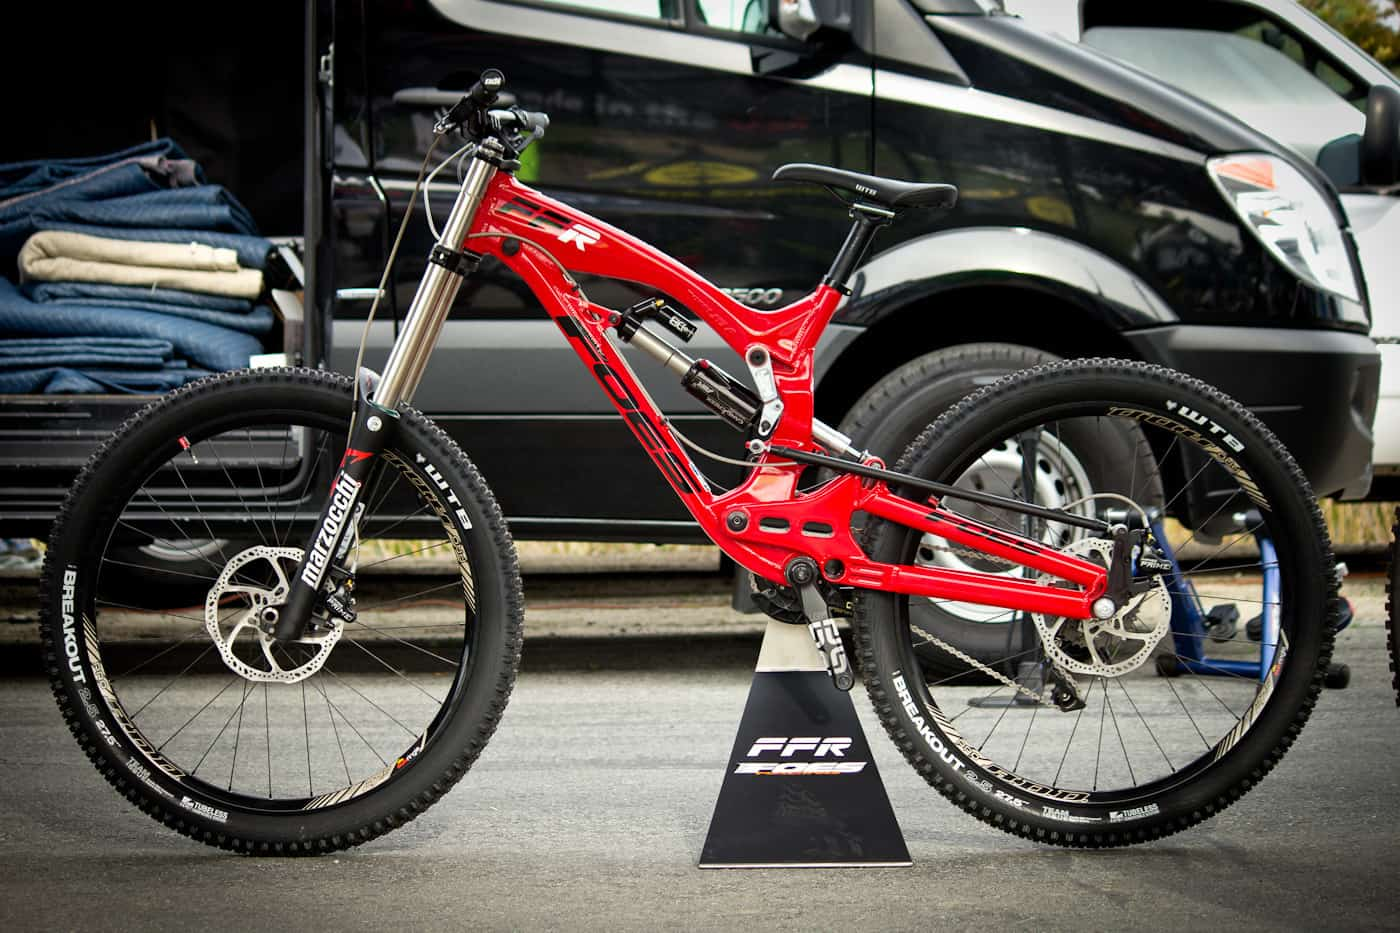 Bikes Made Usa FFR downhill mountain bike